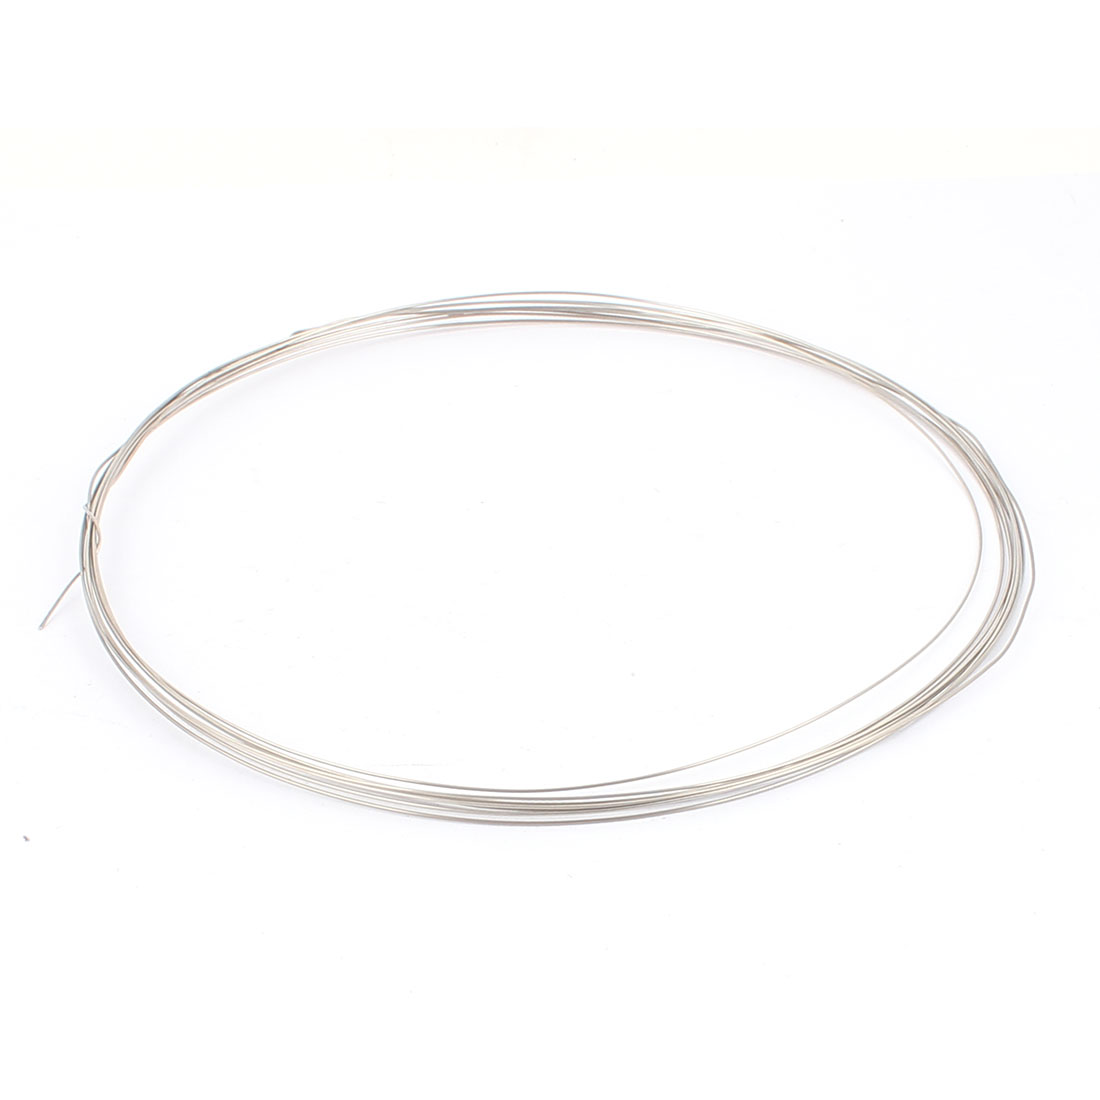 5m Length Constantan Heating Element 21AWG 0.7mm Dia Heater Wire Coil